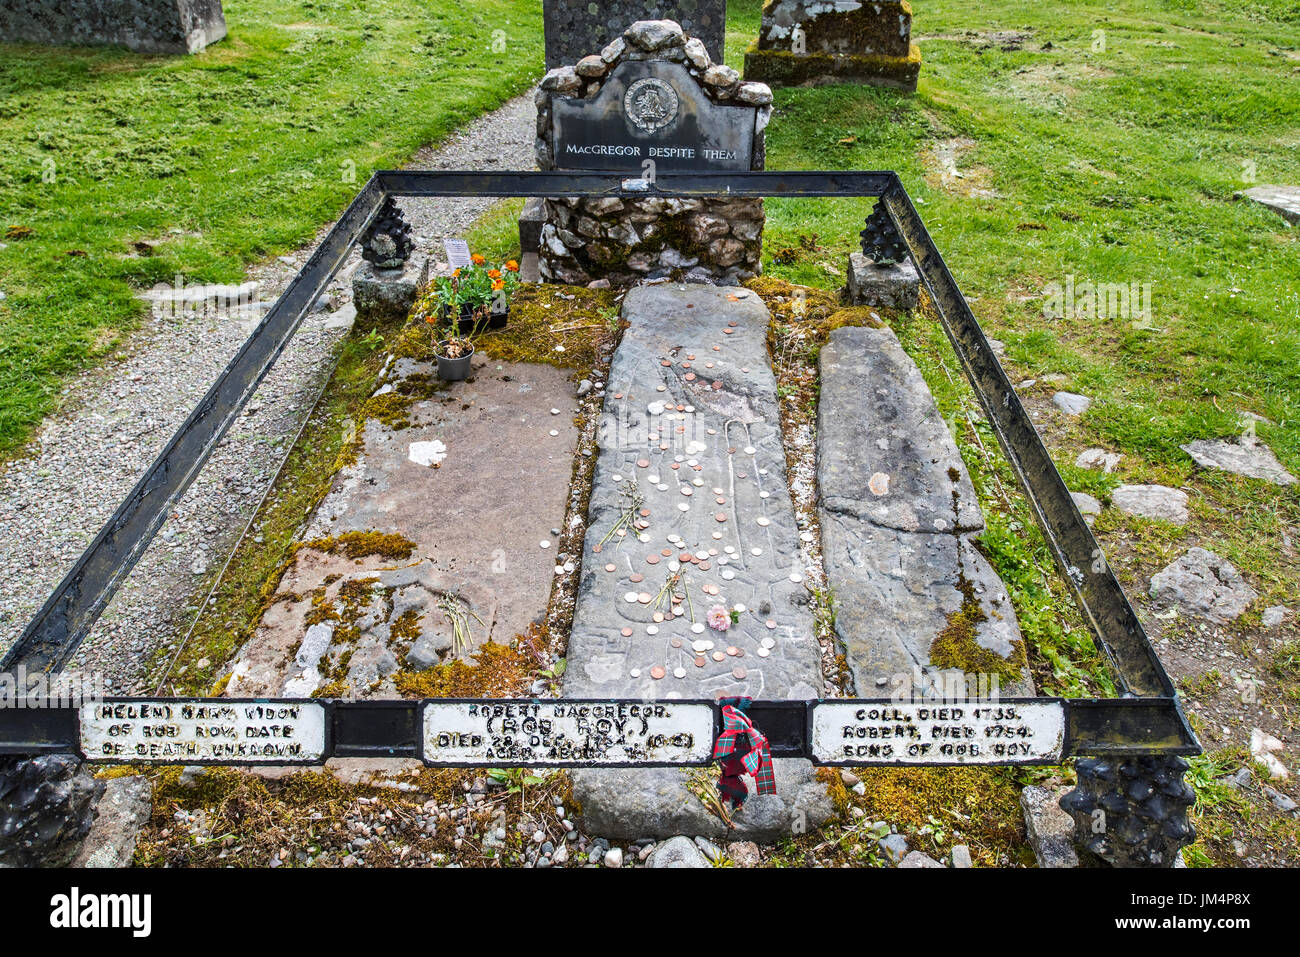 Coins on the graves of Rob Roy MacGregor, his wife Mary and his two sons Coll and Robin at the Balquhidder kirkyard, Stirling, Scotland, UK Stock Photo